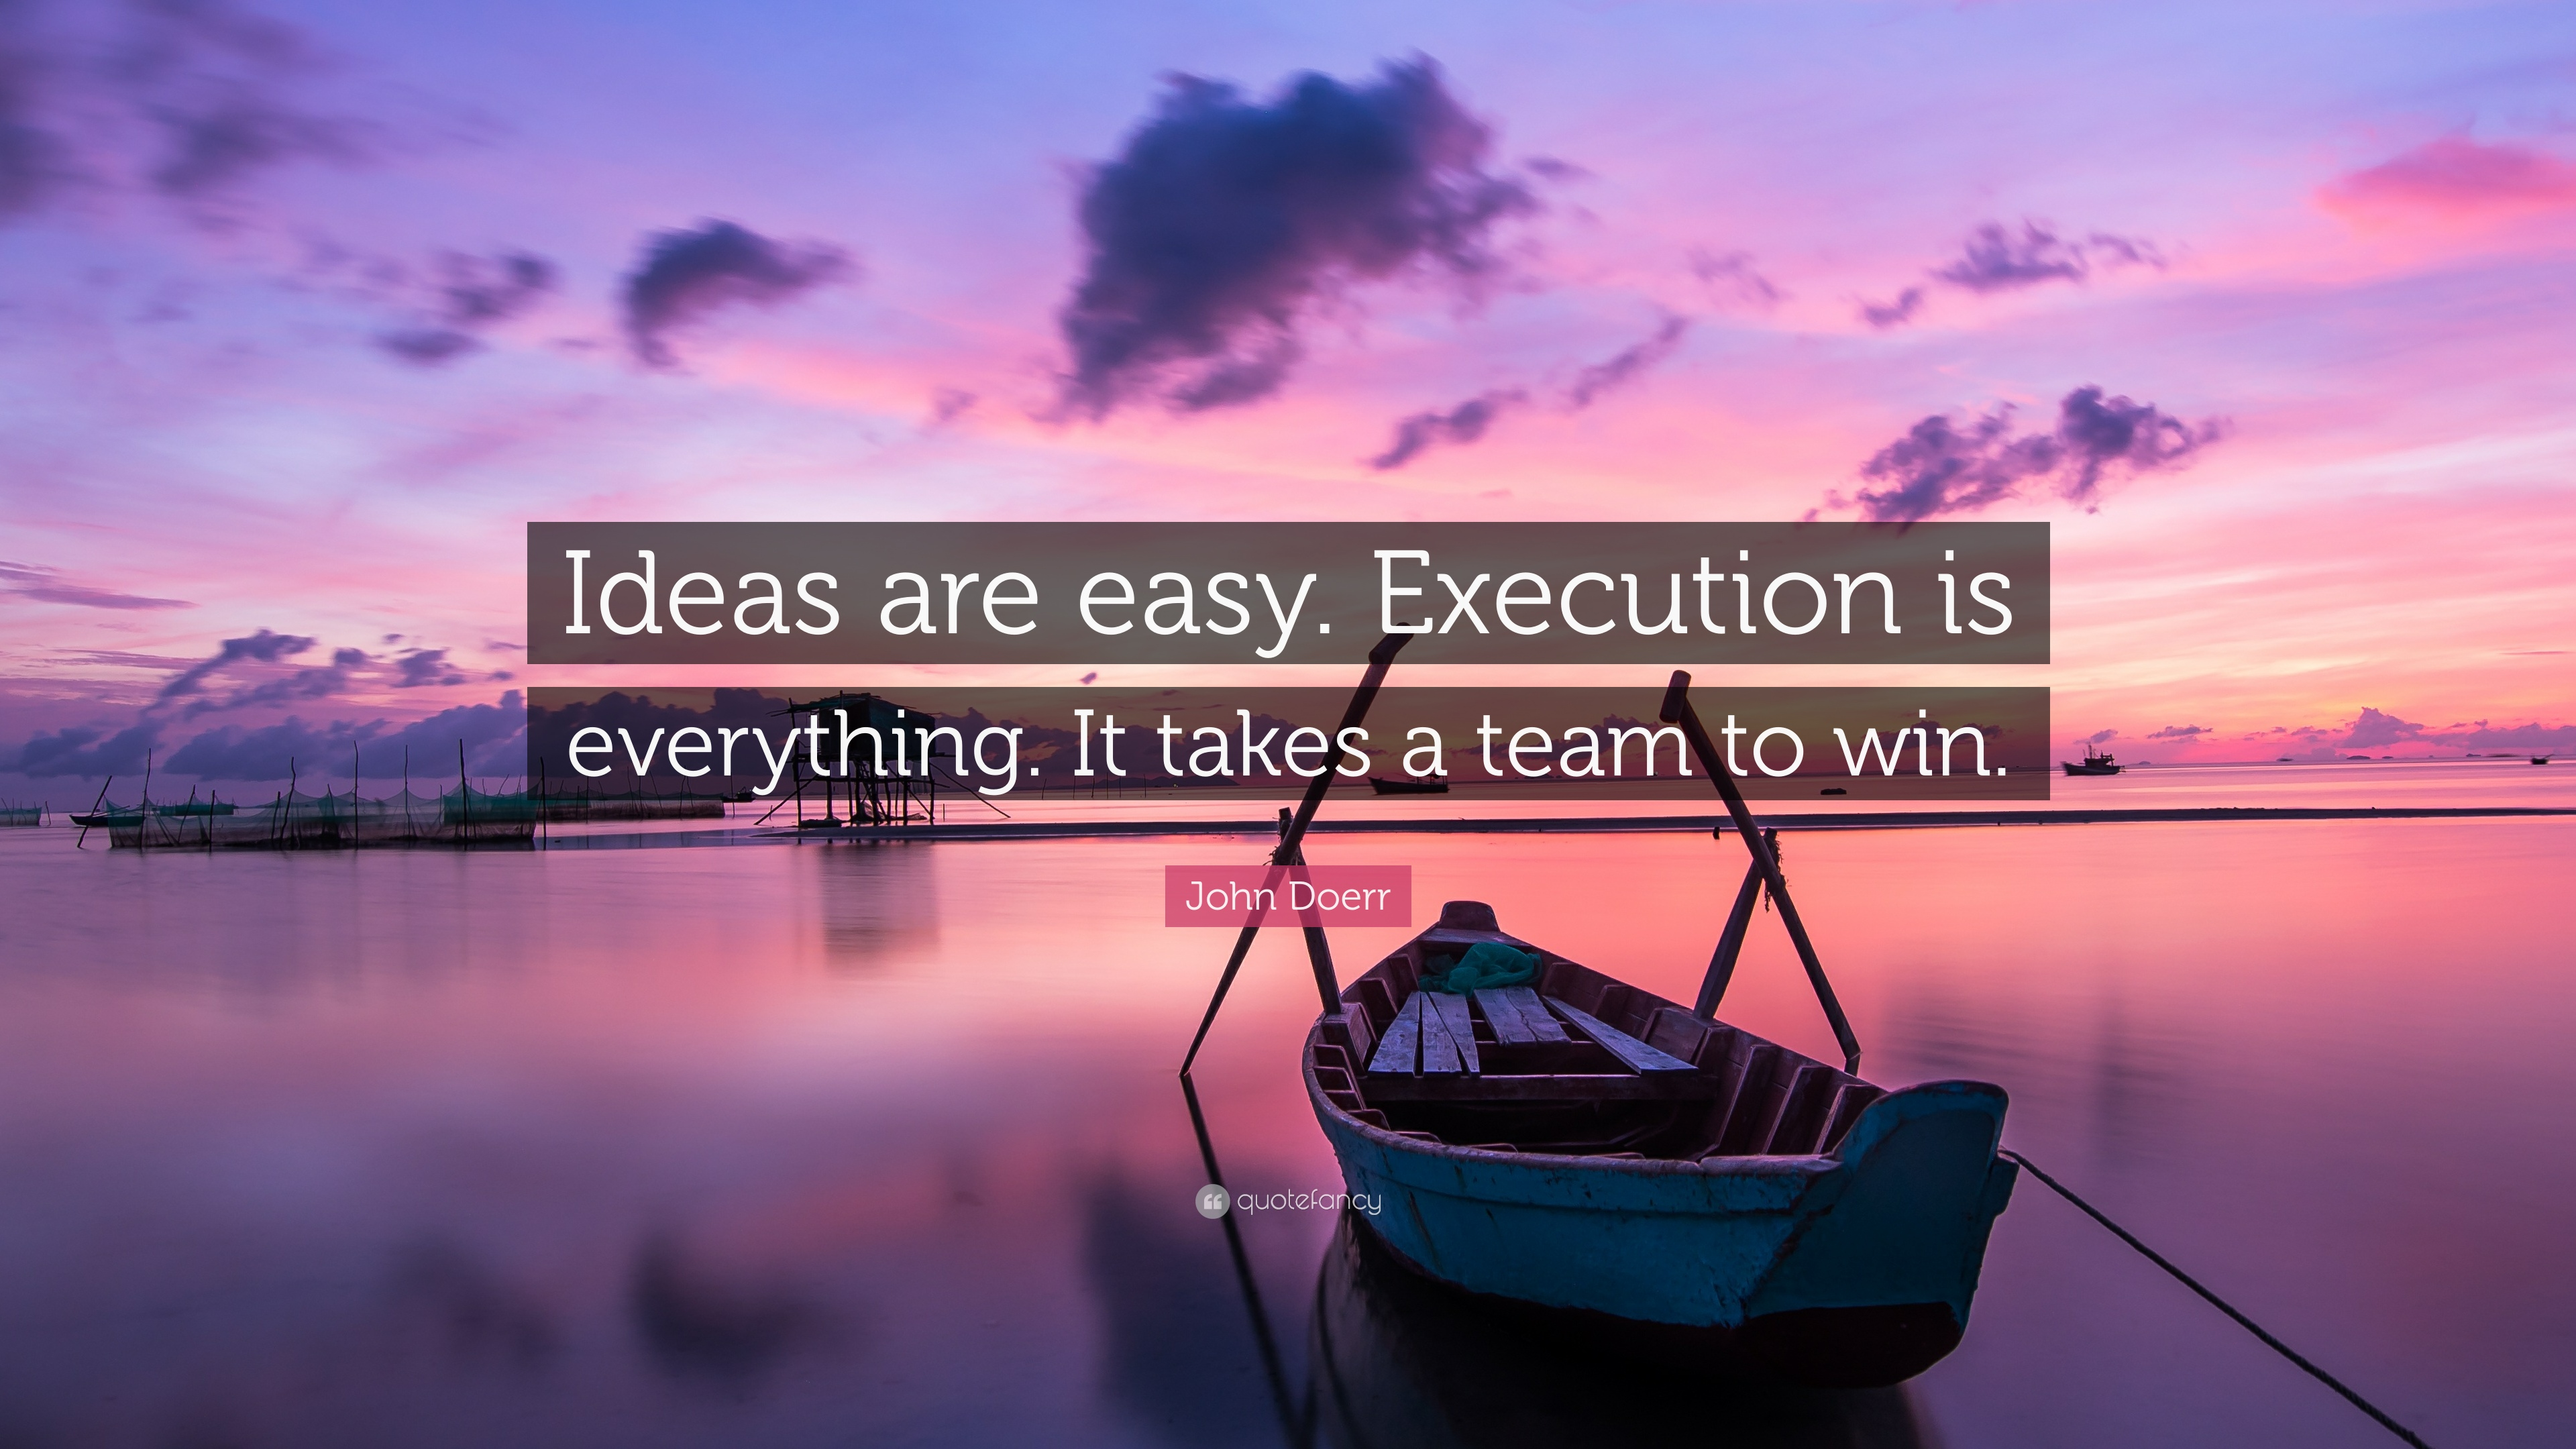 Eleanor Roosevelt Quote Wallpaper John Doerr Quote Ideas Are Easy Execution Is Everything